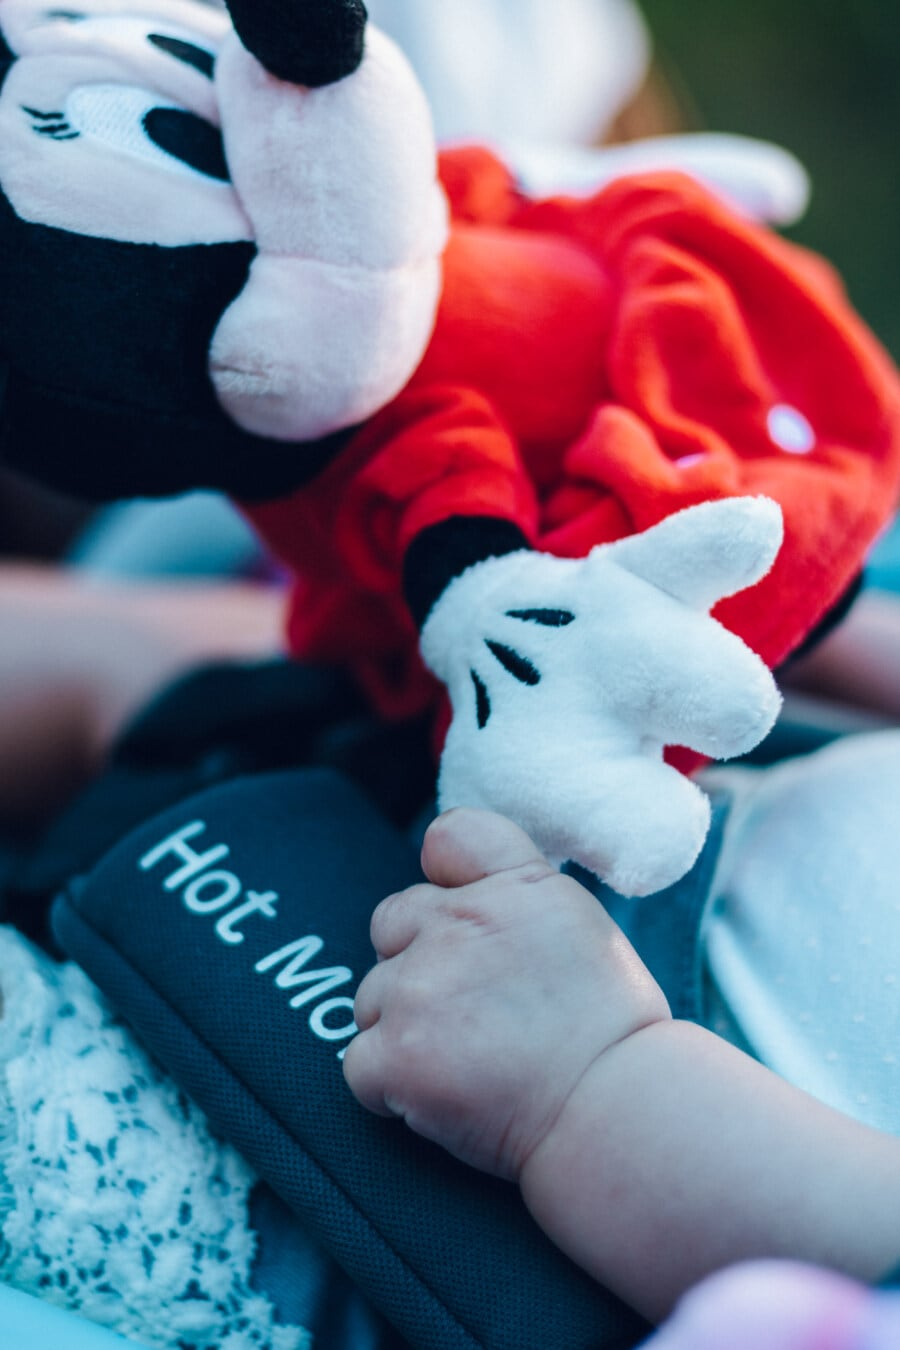 toy, plush, baby, child, cute, indoors, fun, hand, finger, adorable